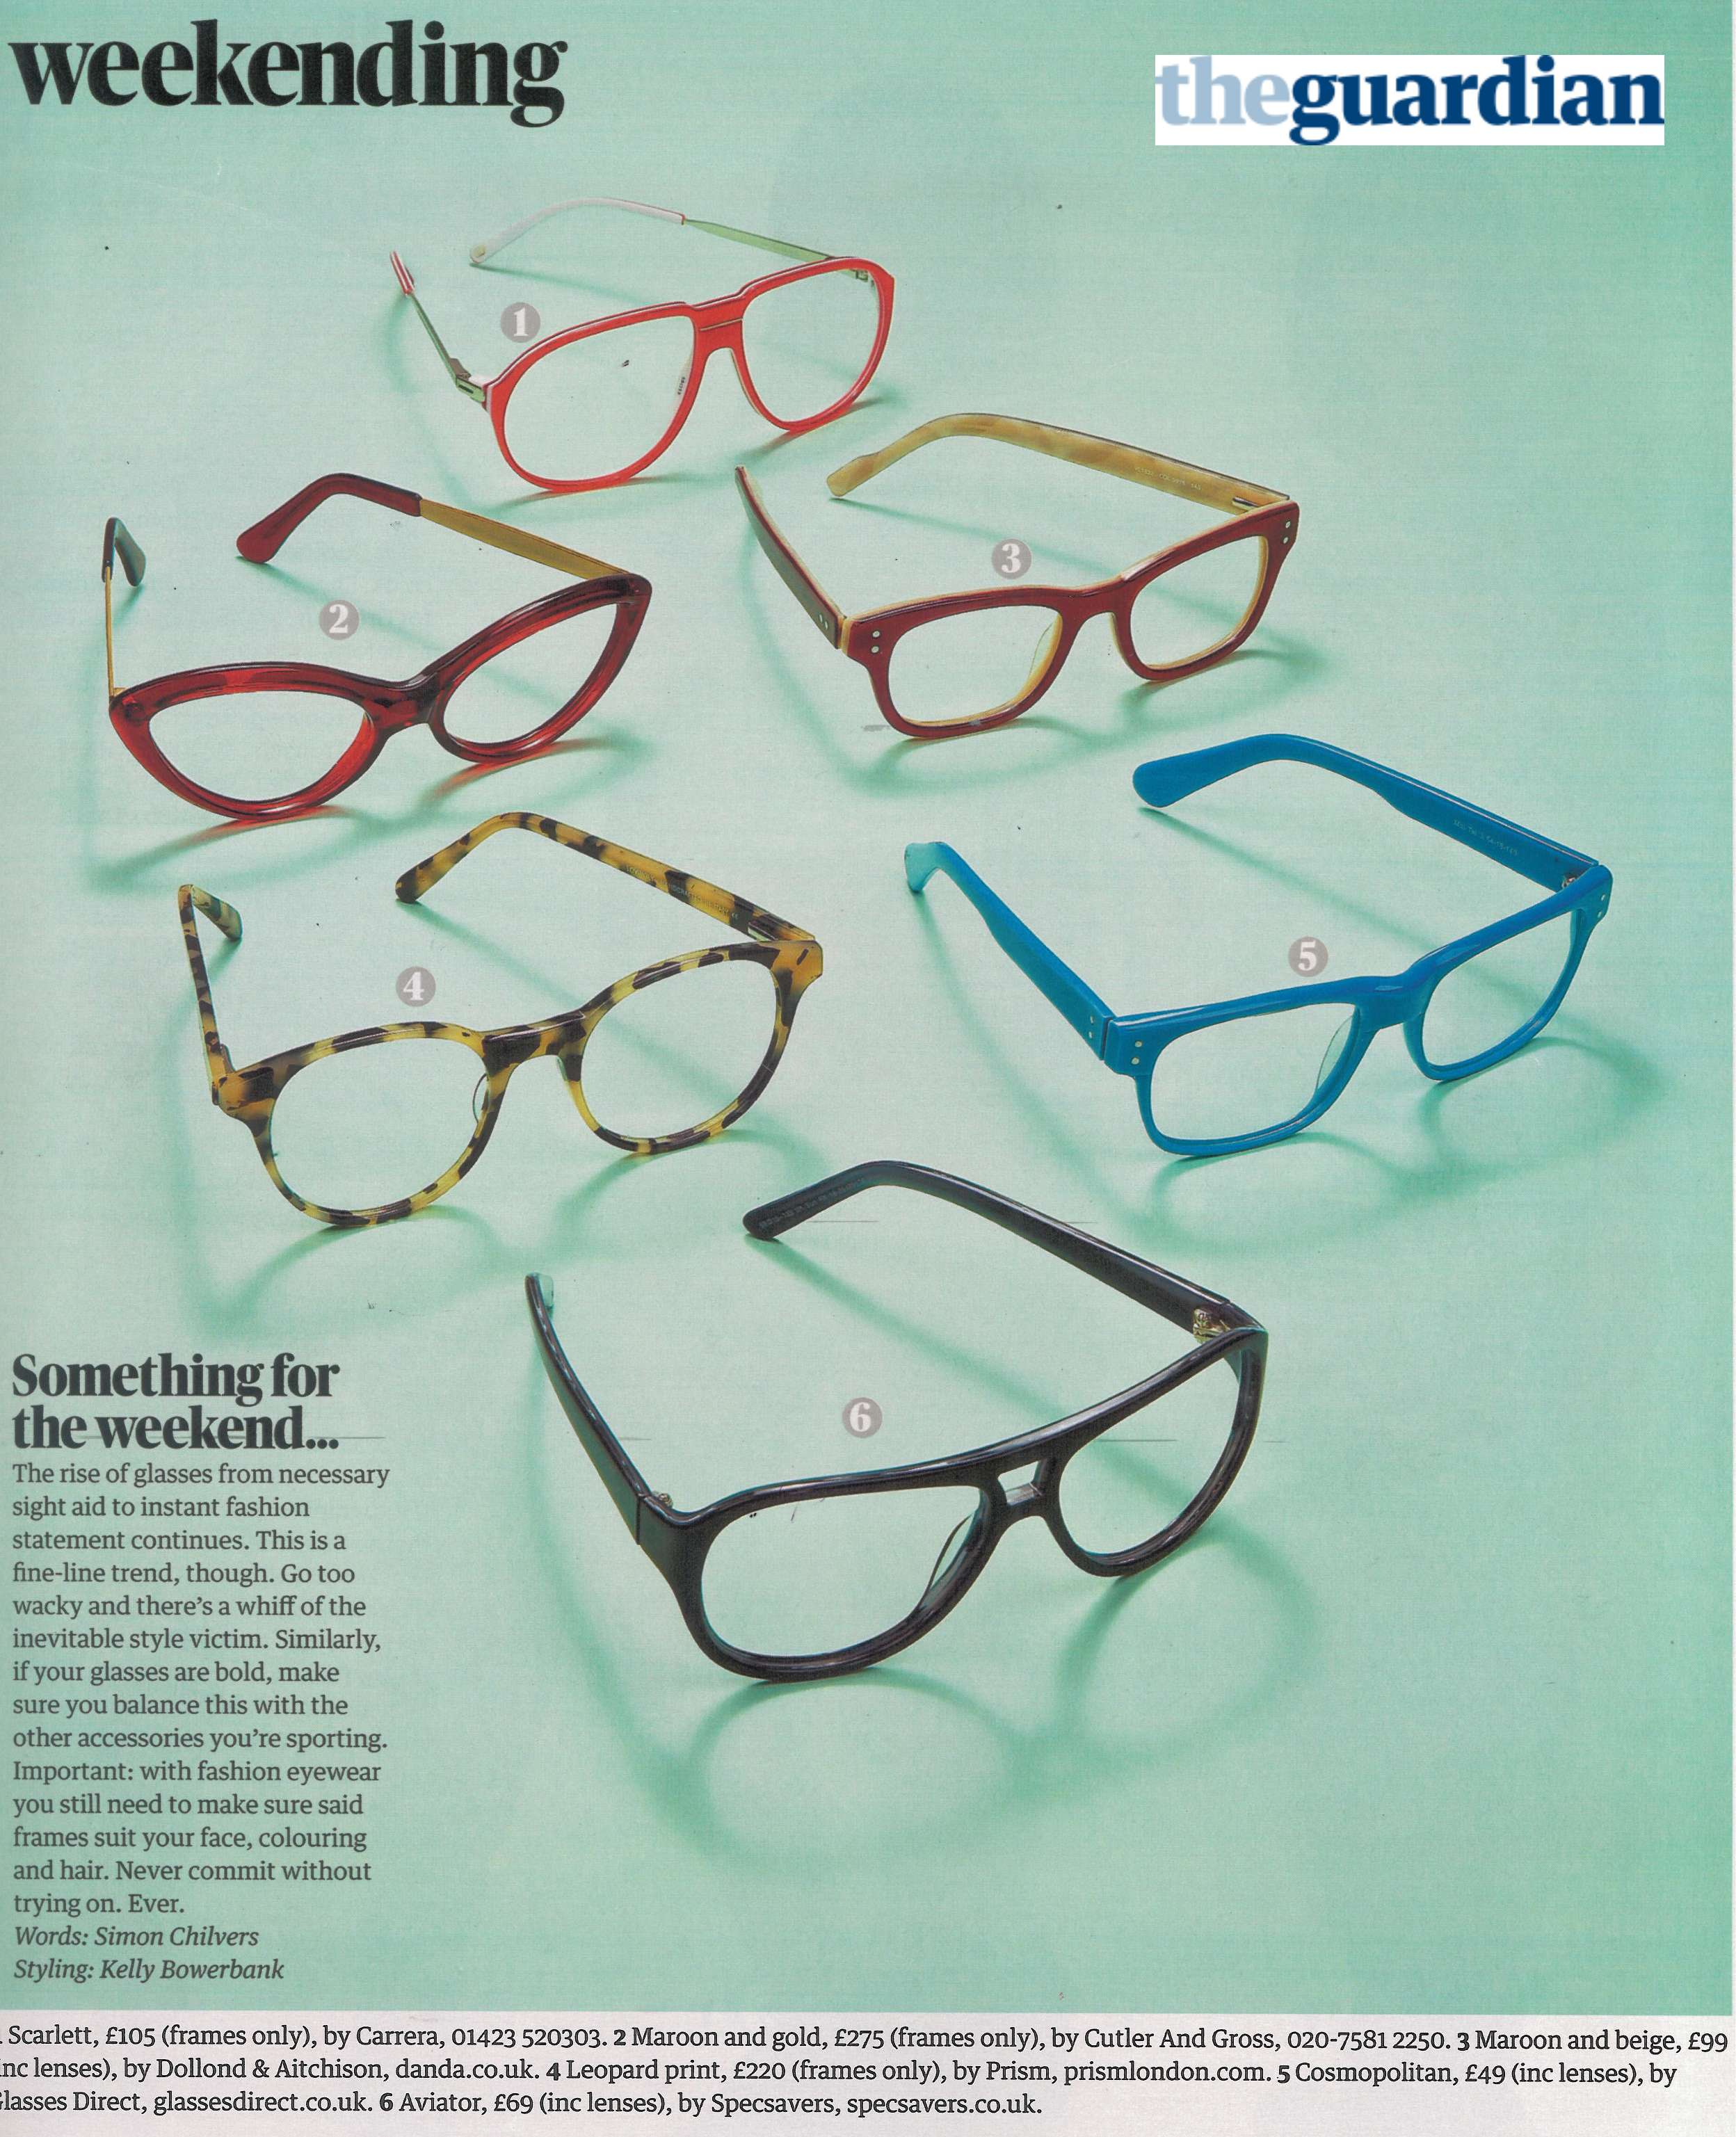 eyewear direct  Glasses Direct in the Guardian: Changes in Style